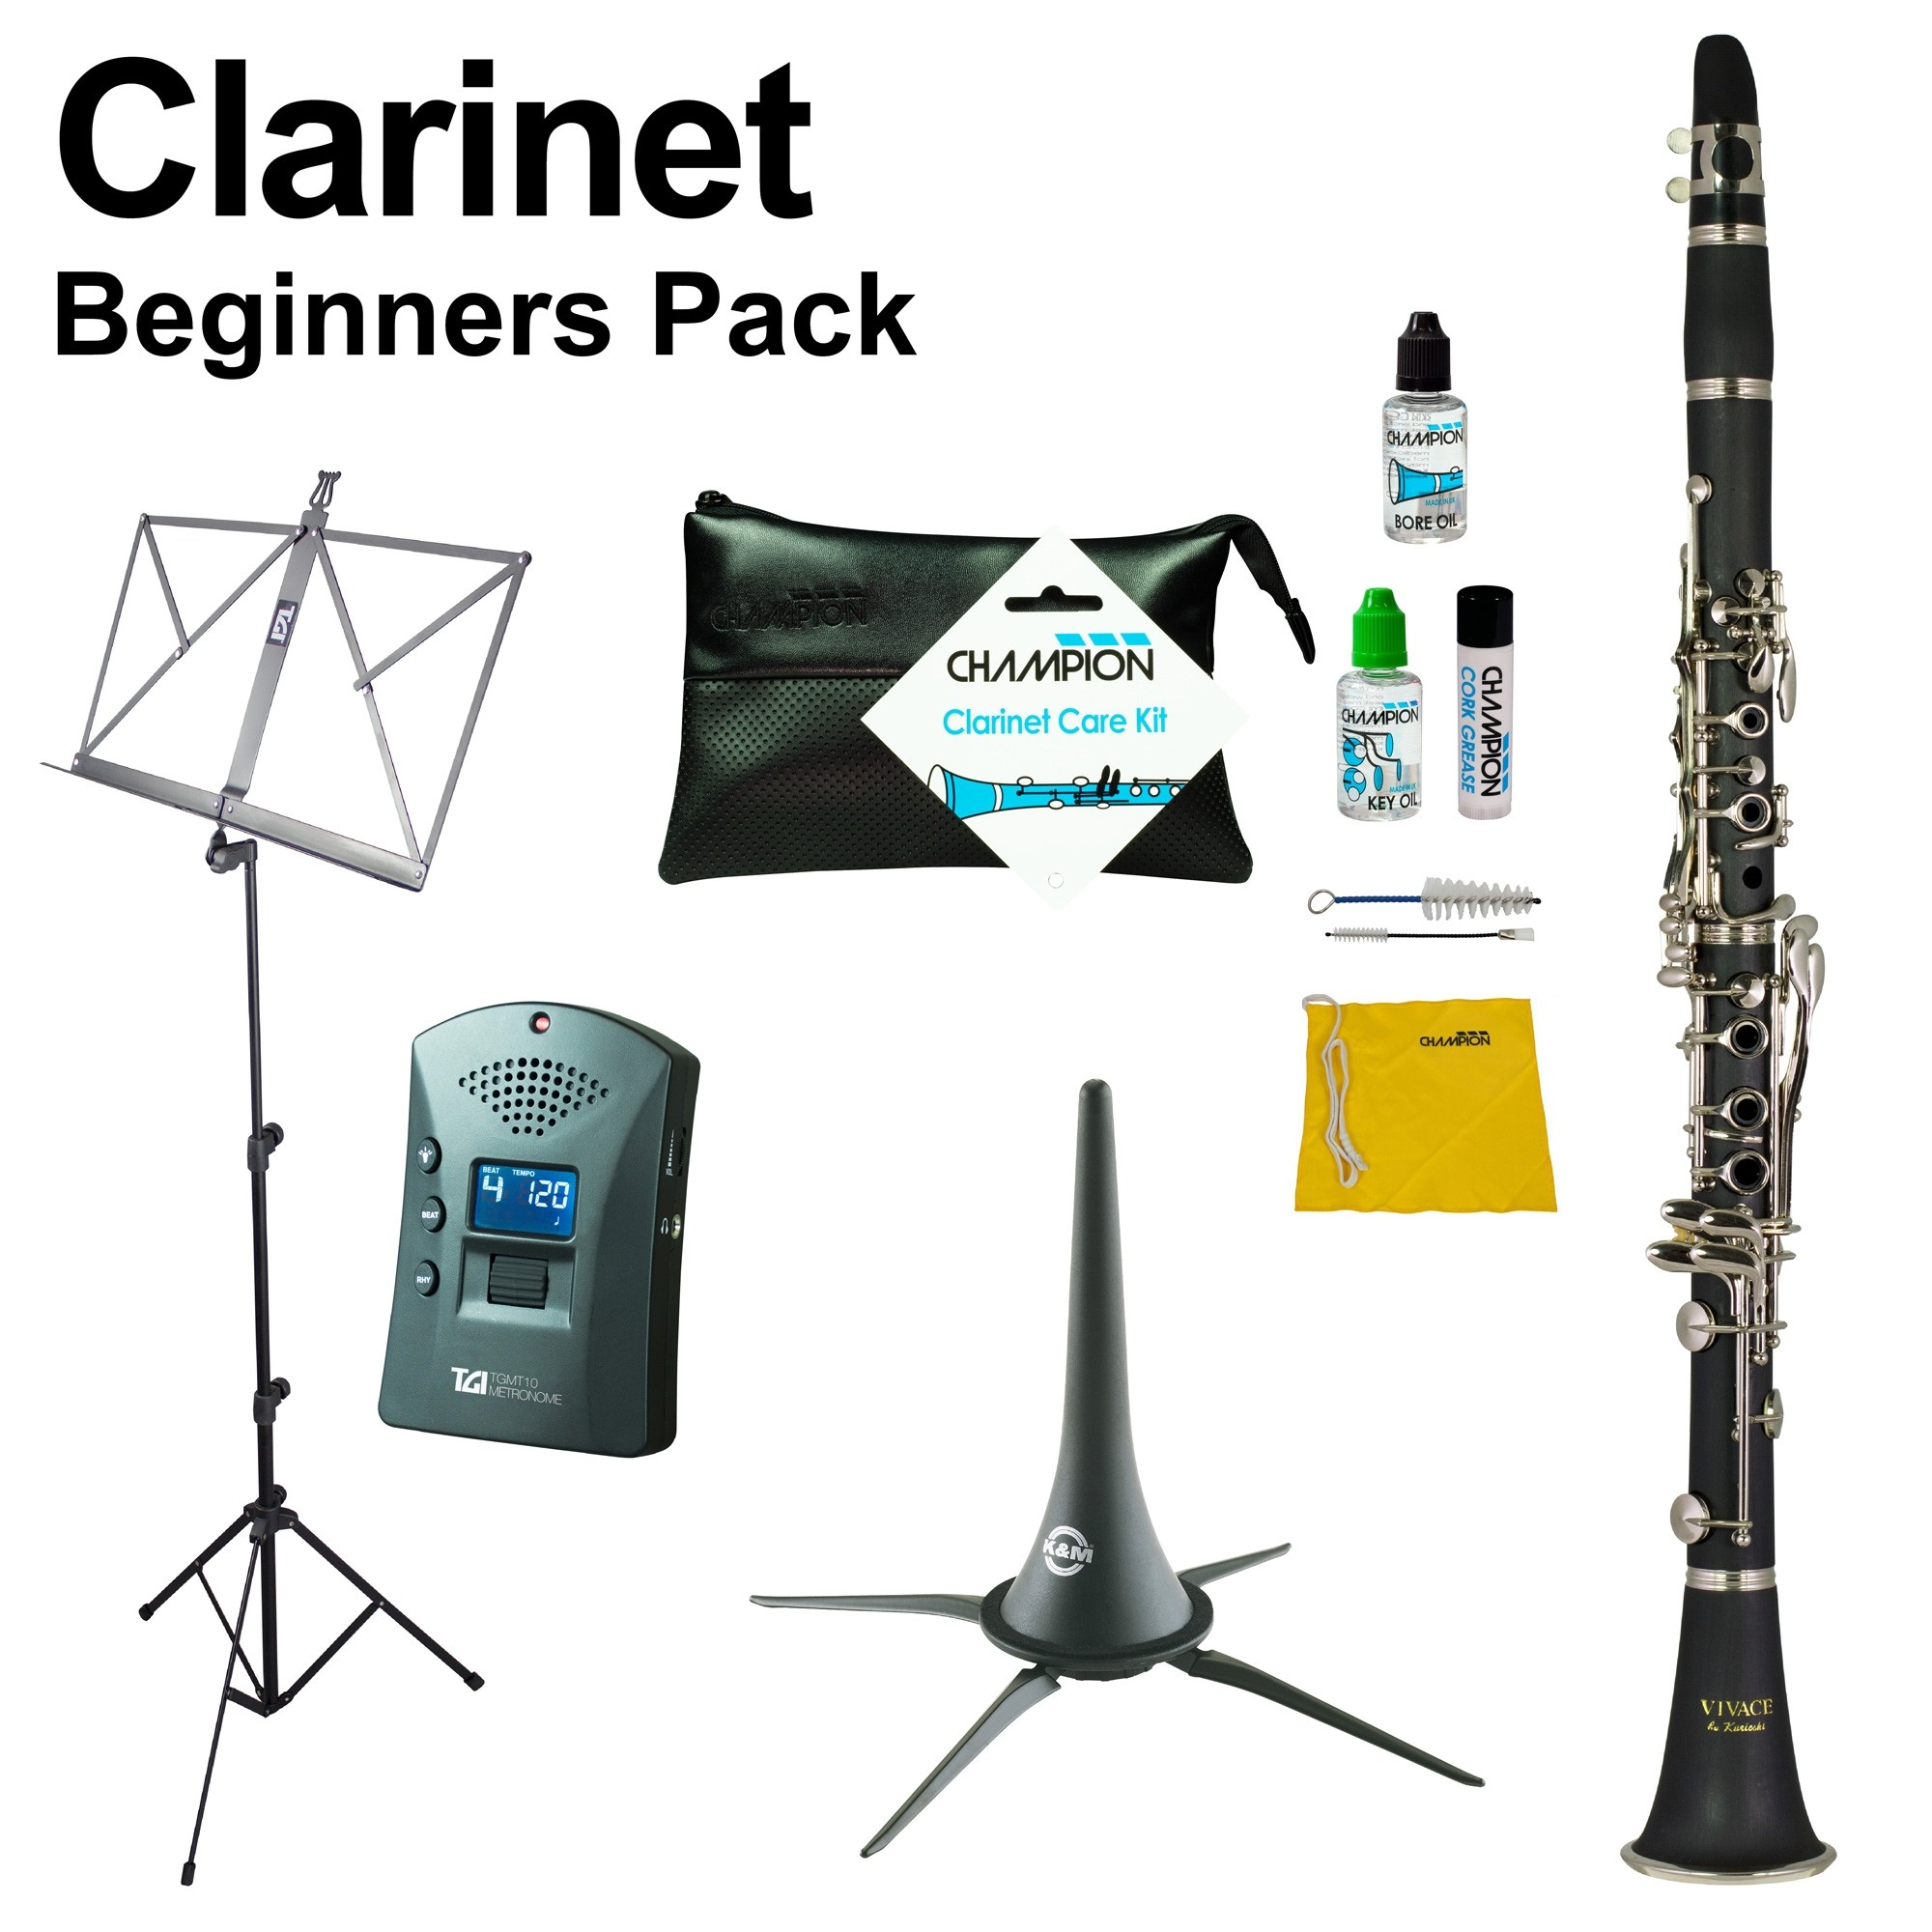 CLARINET BEGINNERS PACK - INC CASE, CARE KIT, STANDS AND MORE